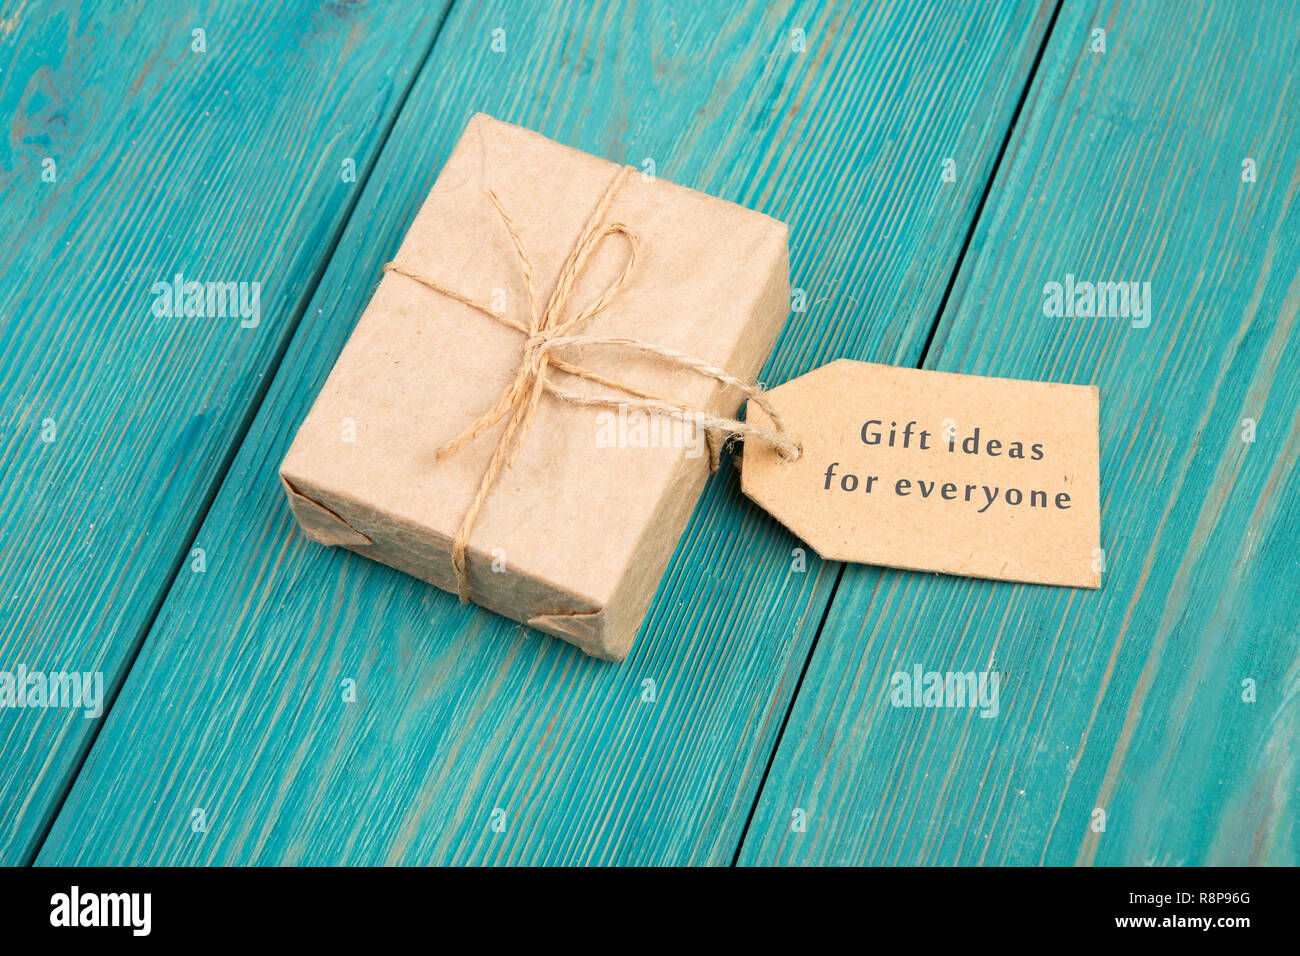 Gift box and tag with text 'Gift ideas for everyone' on blue wooden table - Stock Image